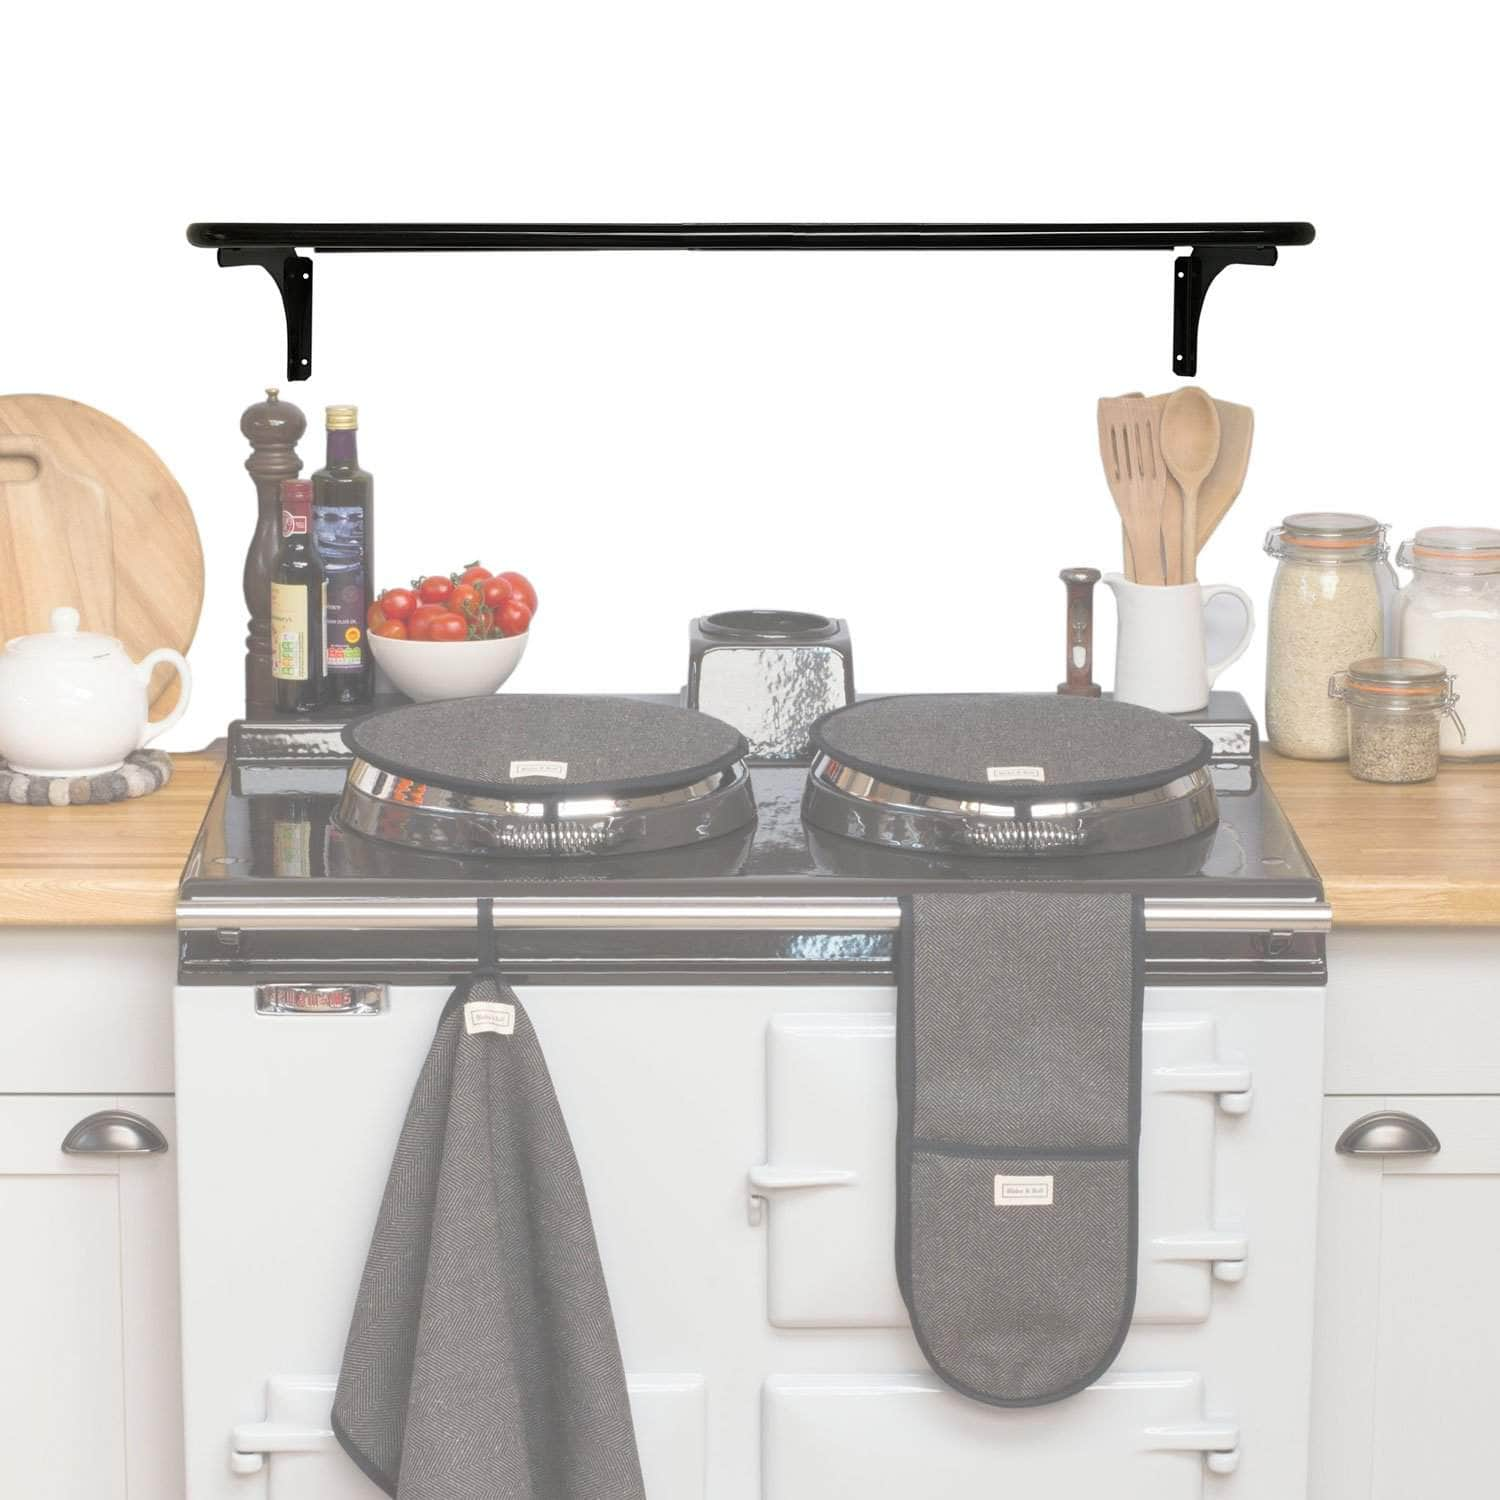 Wall pot rack (no cut out) for use with balance flue Aga range cooker (gloss black)